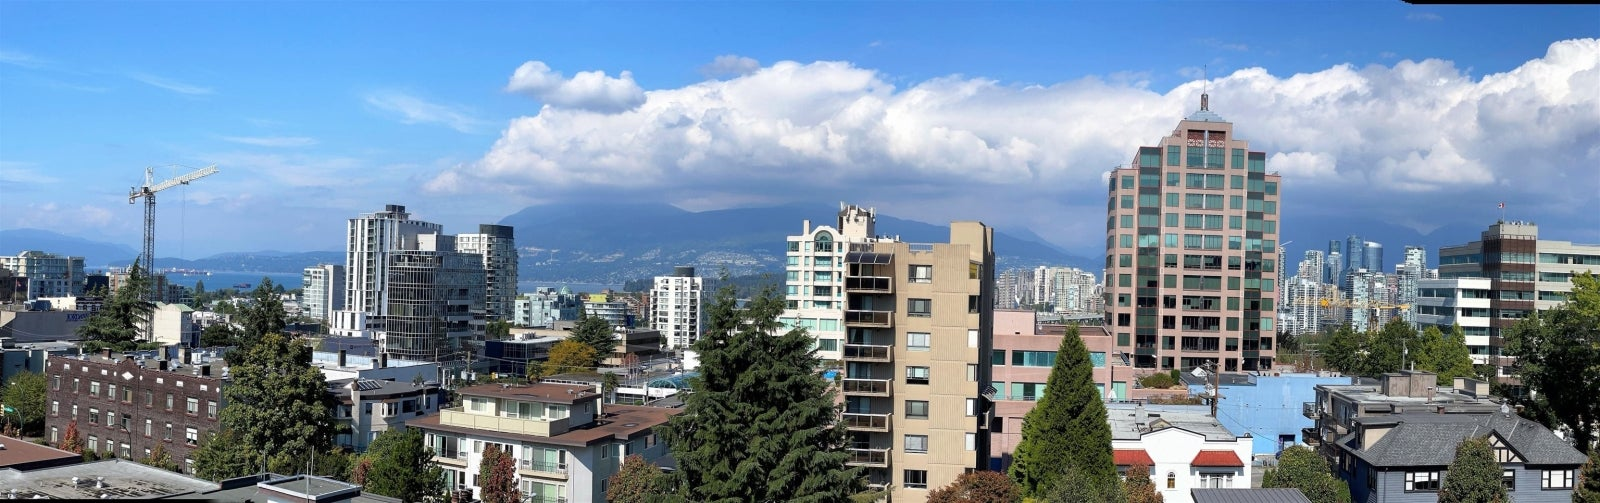 803 1333 W 11TH AVENUE - Fairview VW Apartment/Condo for sale, 2 Bedrooms (R2616288) #32